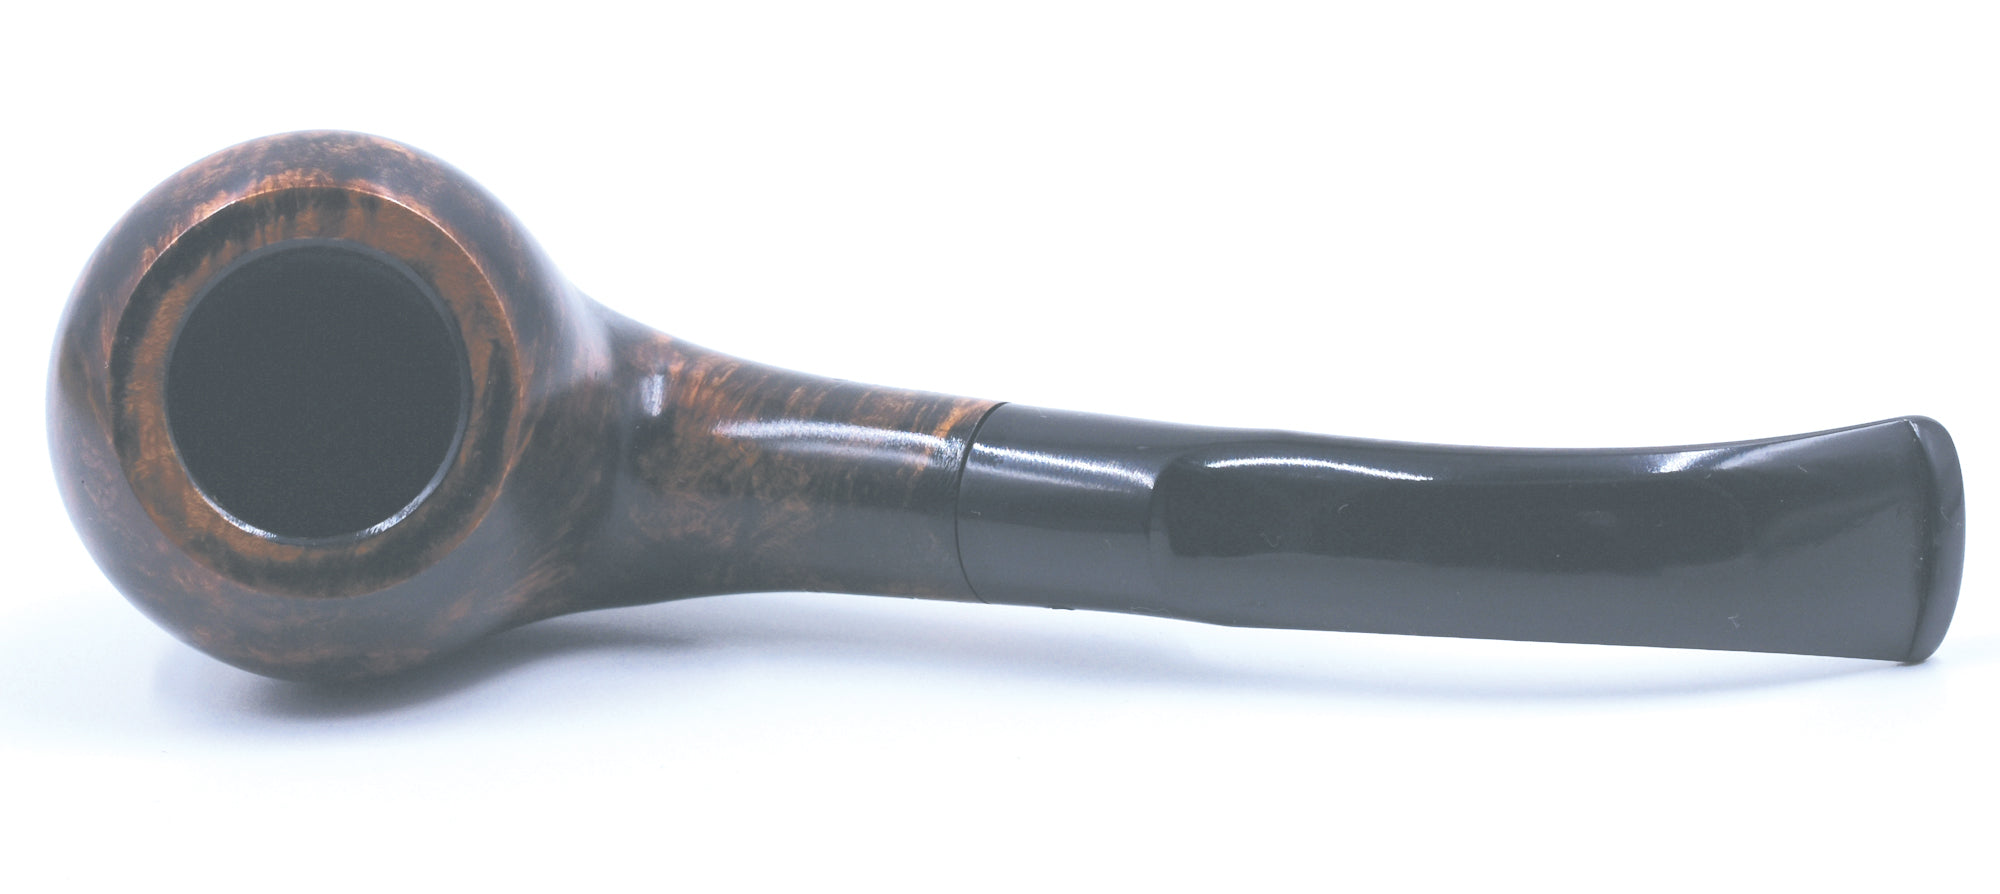 LEGENDEX® PUCCINI* 6 MM Filtered Briar Smoking Pipe Made In Italy 01-08-210